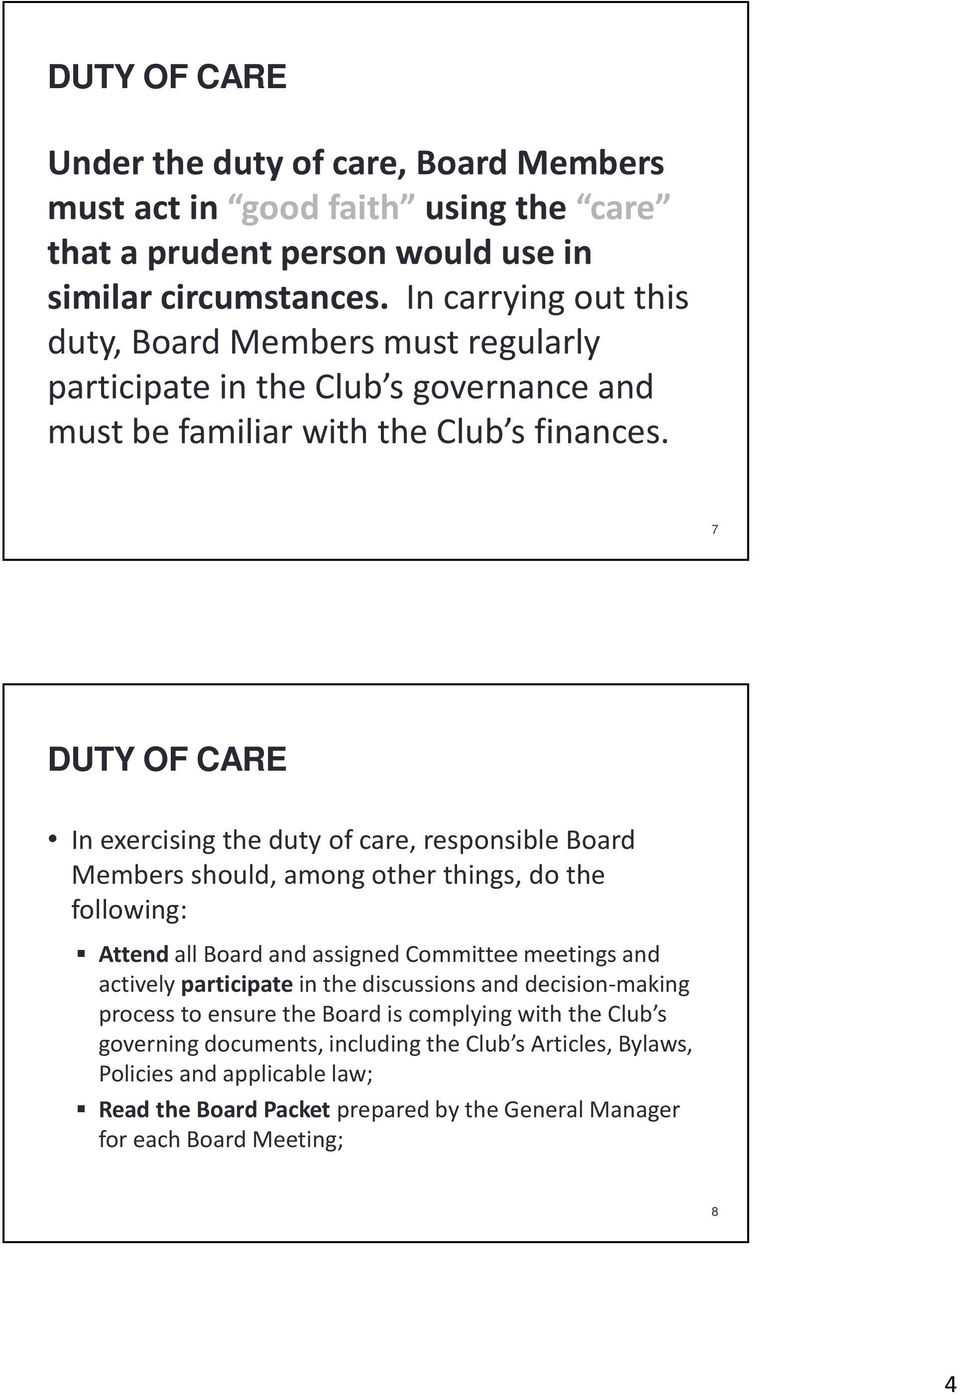 7 DUTY OF CARE In exercising the duty of care, responsible Board Members should, among other things, do the following: Attendall Board and assigned Committee meetings and actively